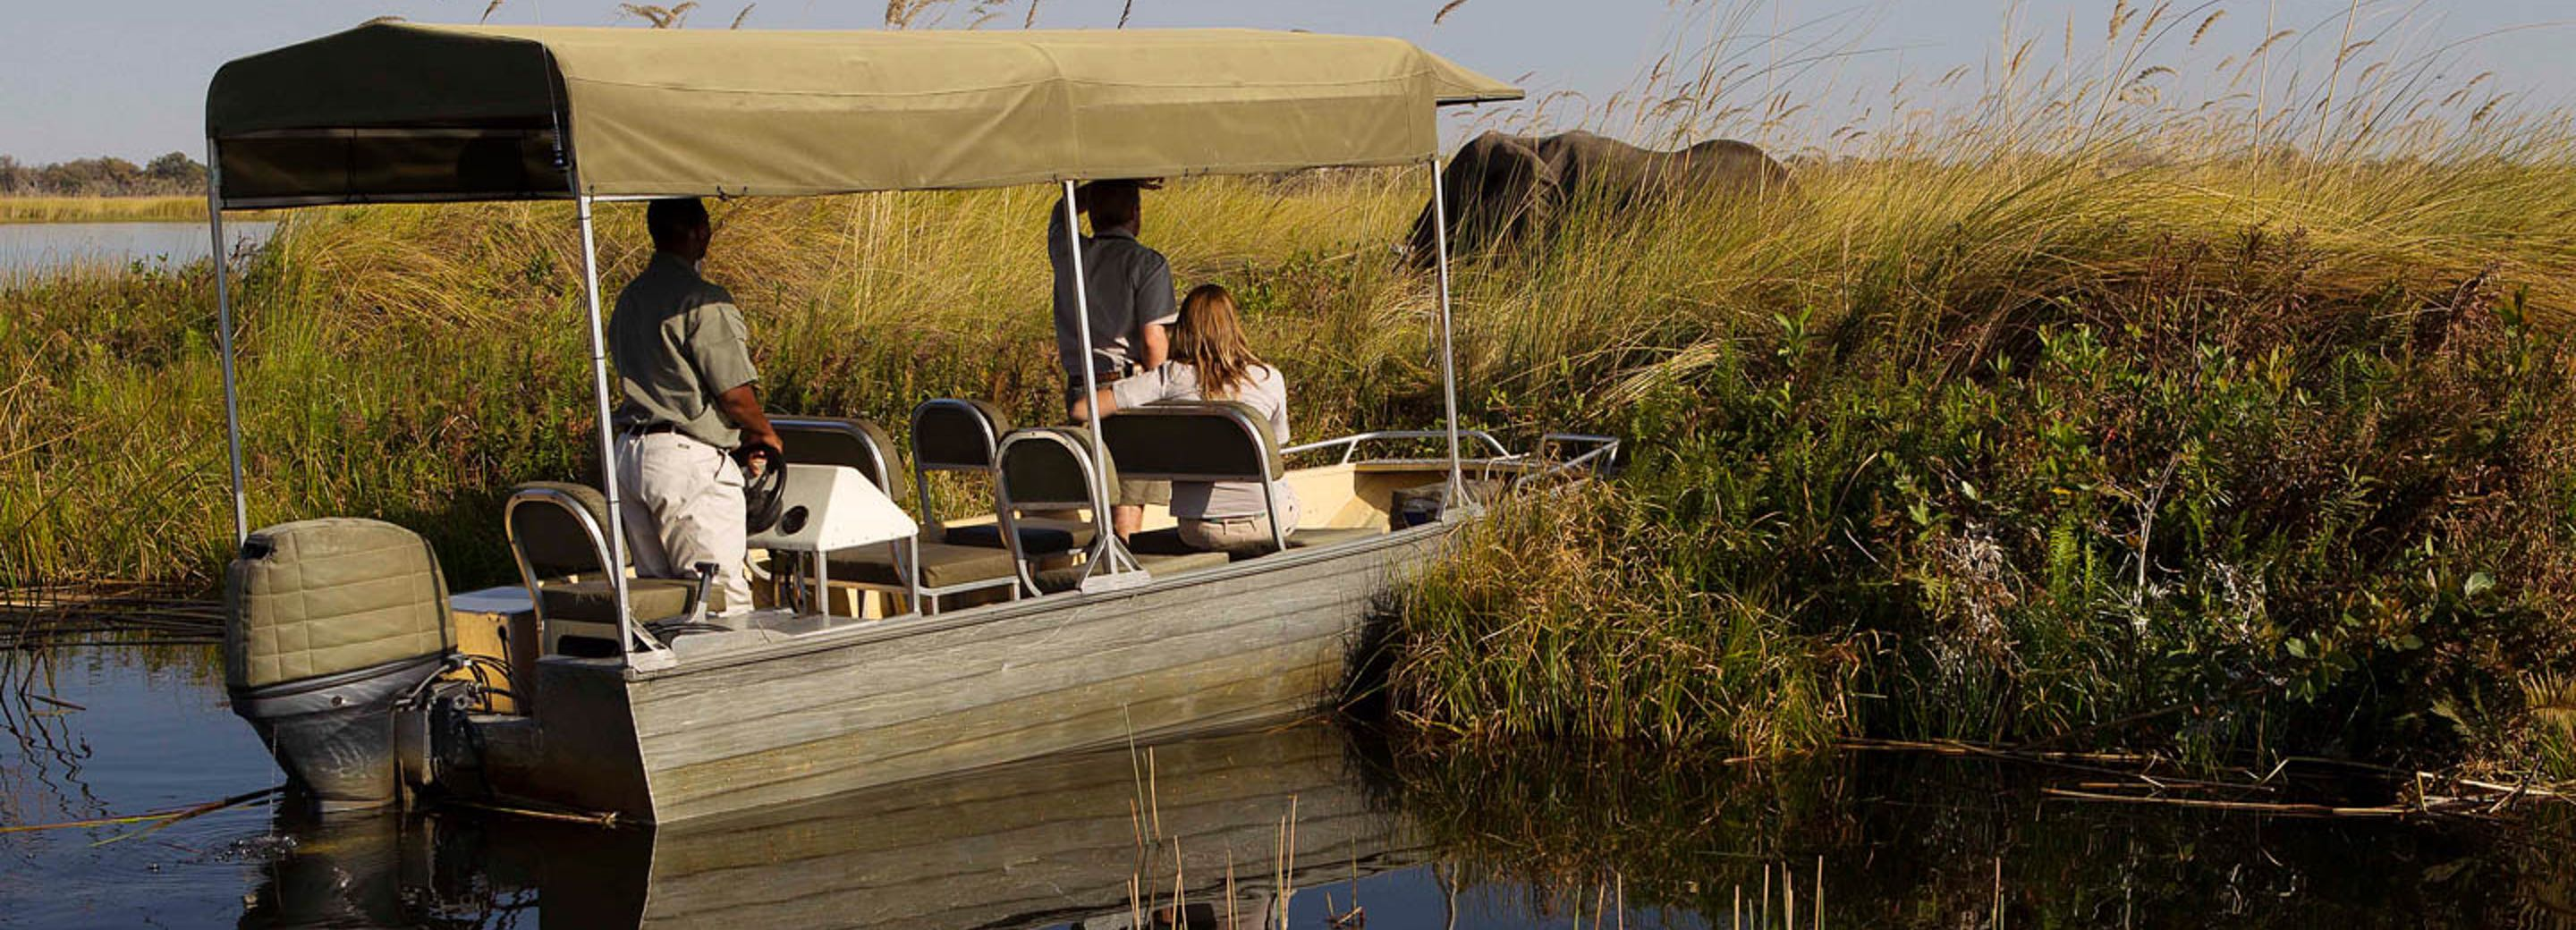 boat-safari-game-view-xugana-island-lodge-okavango-delta-timbuktu-travel